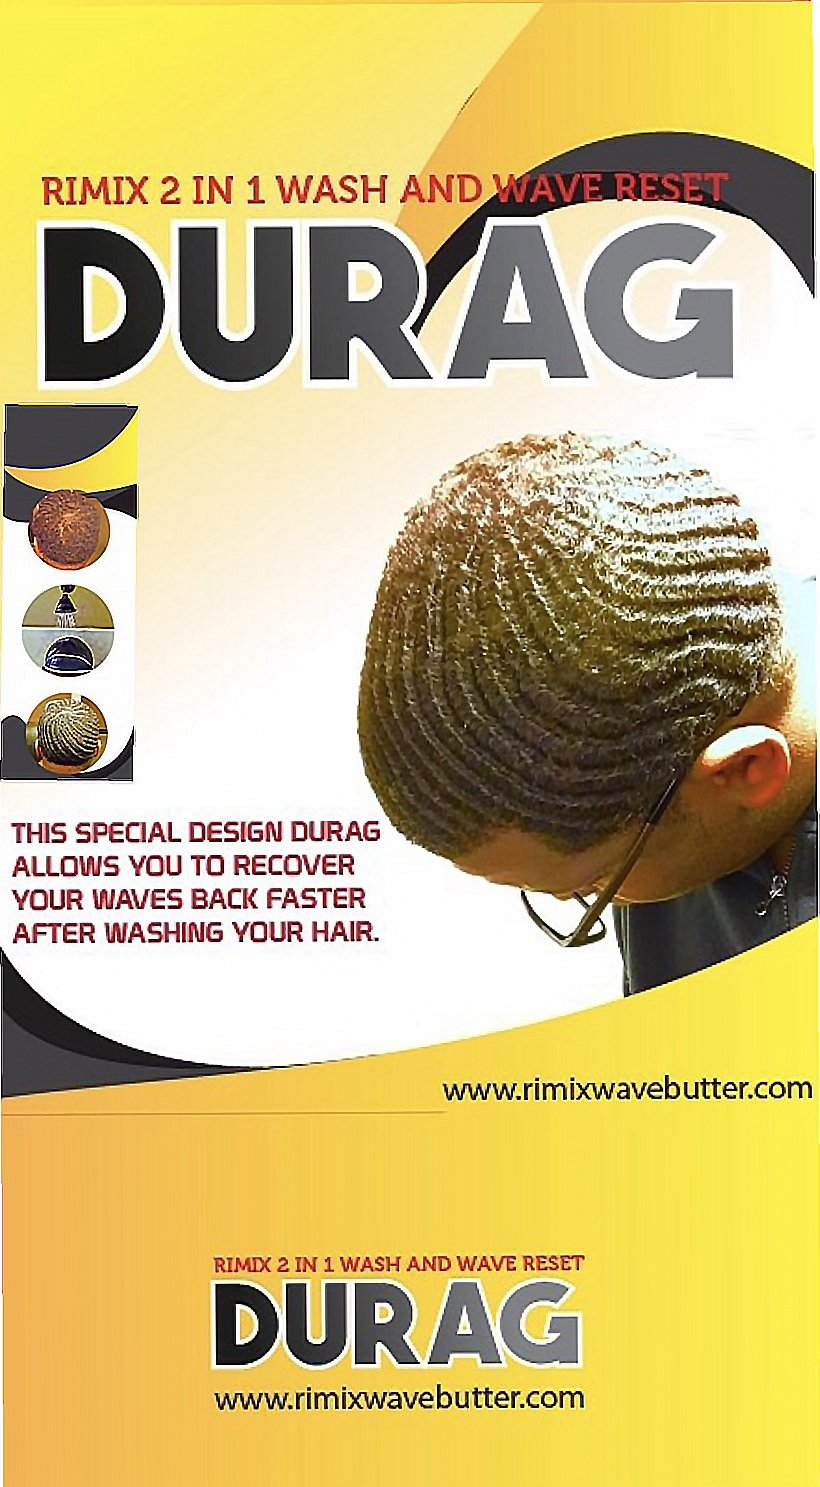 Amazoncom Rimix 2 In 1 Wash And Wave Reset Durag For 360 540